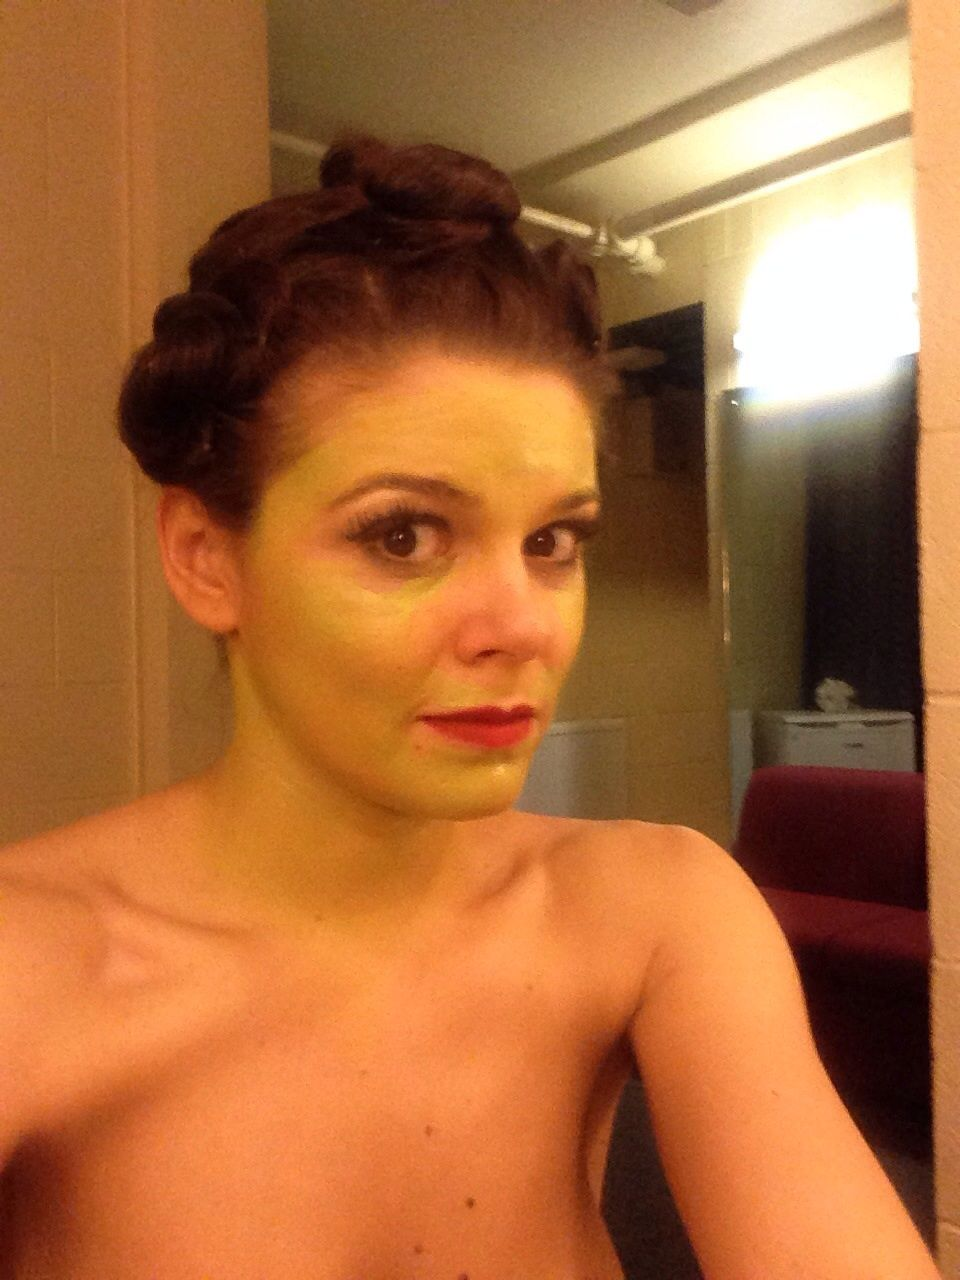 Faye-Brookes-Leaked-1-thefappening_nu_277f01.jpg